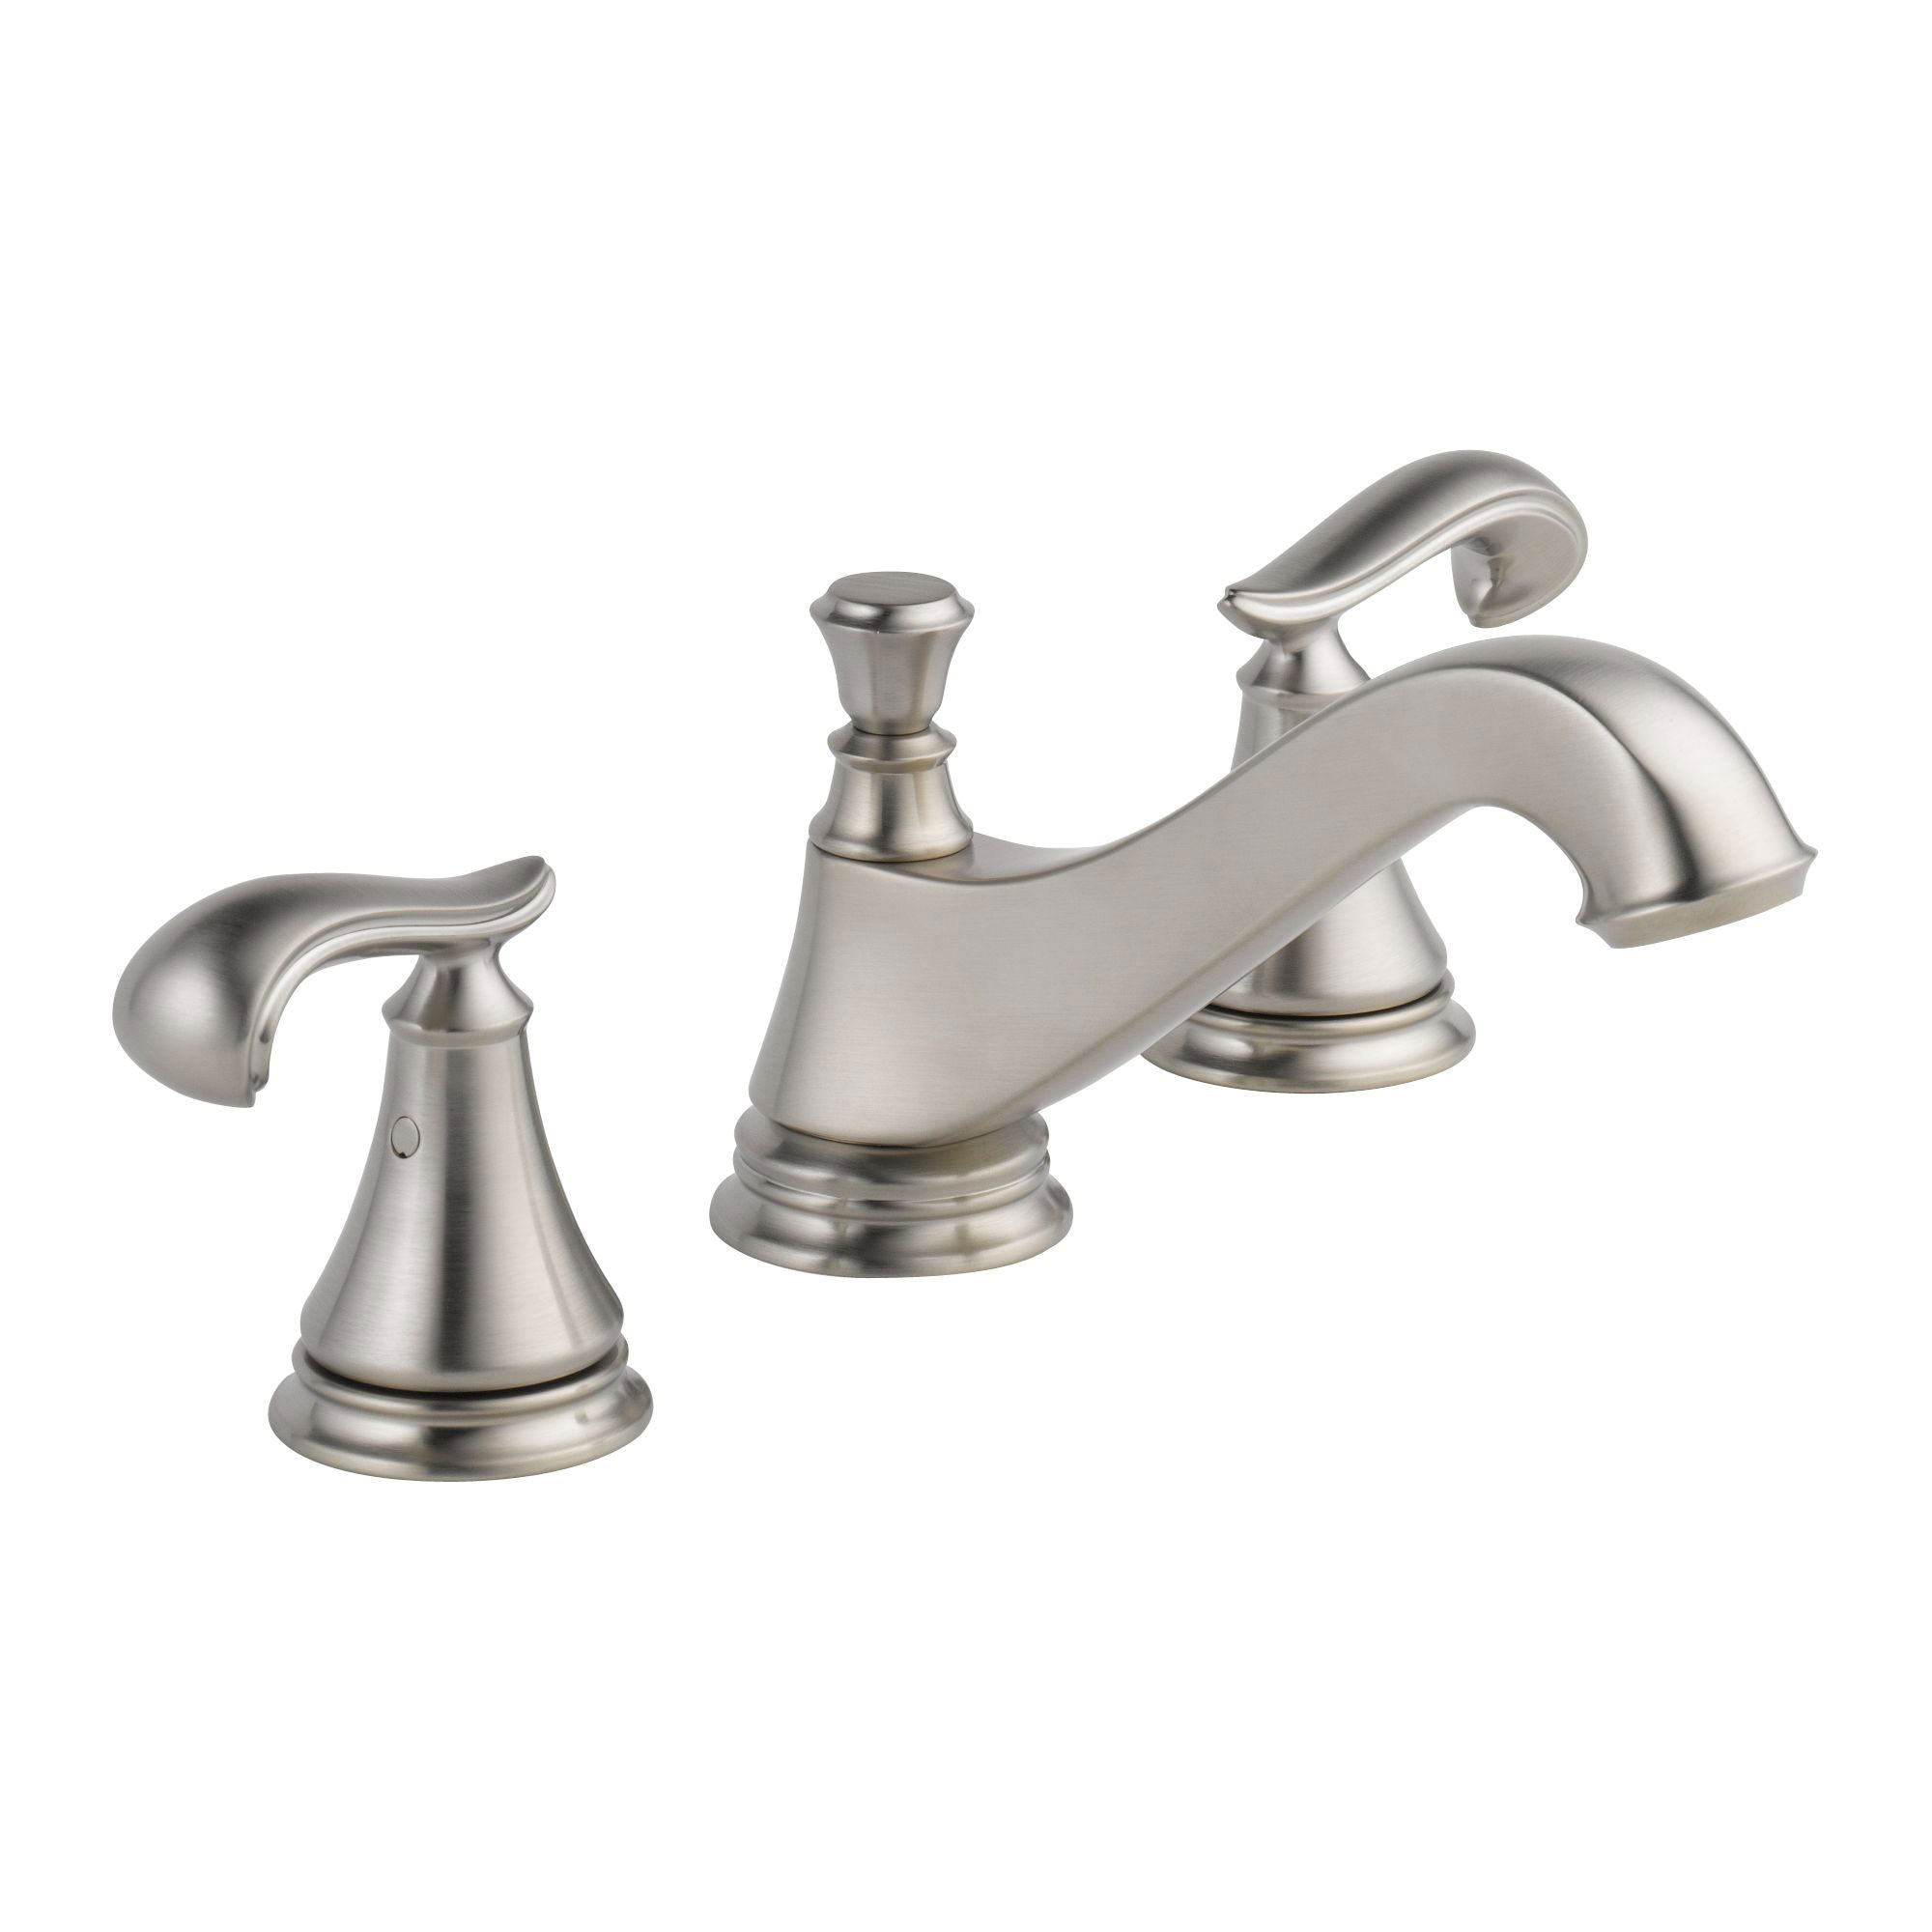 Delta Cassidy Stainless Steel Finish Widespread Lavatory Low Arc Spout Bathroom Sink Faucet INCLUDES Two French Curve Lever Handles and Matching Metal Pop-Up Drain D1310V